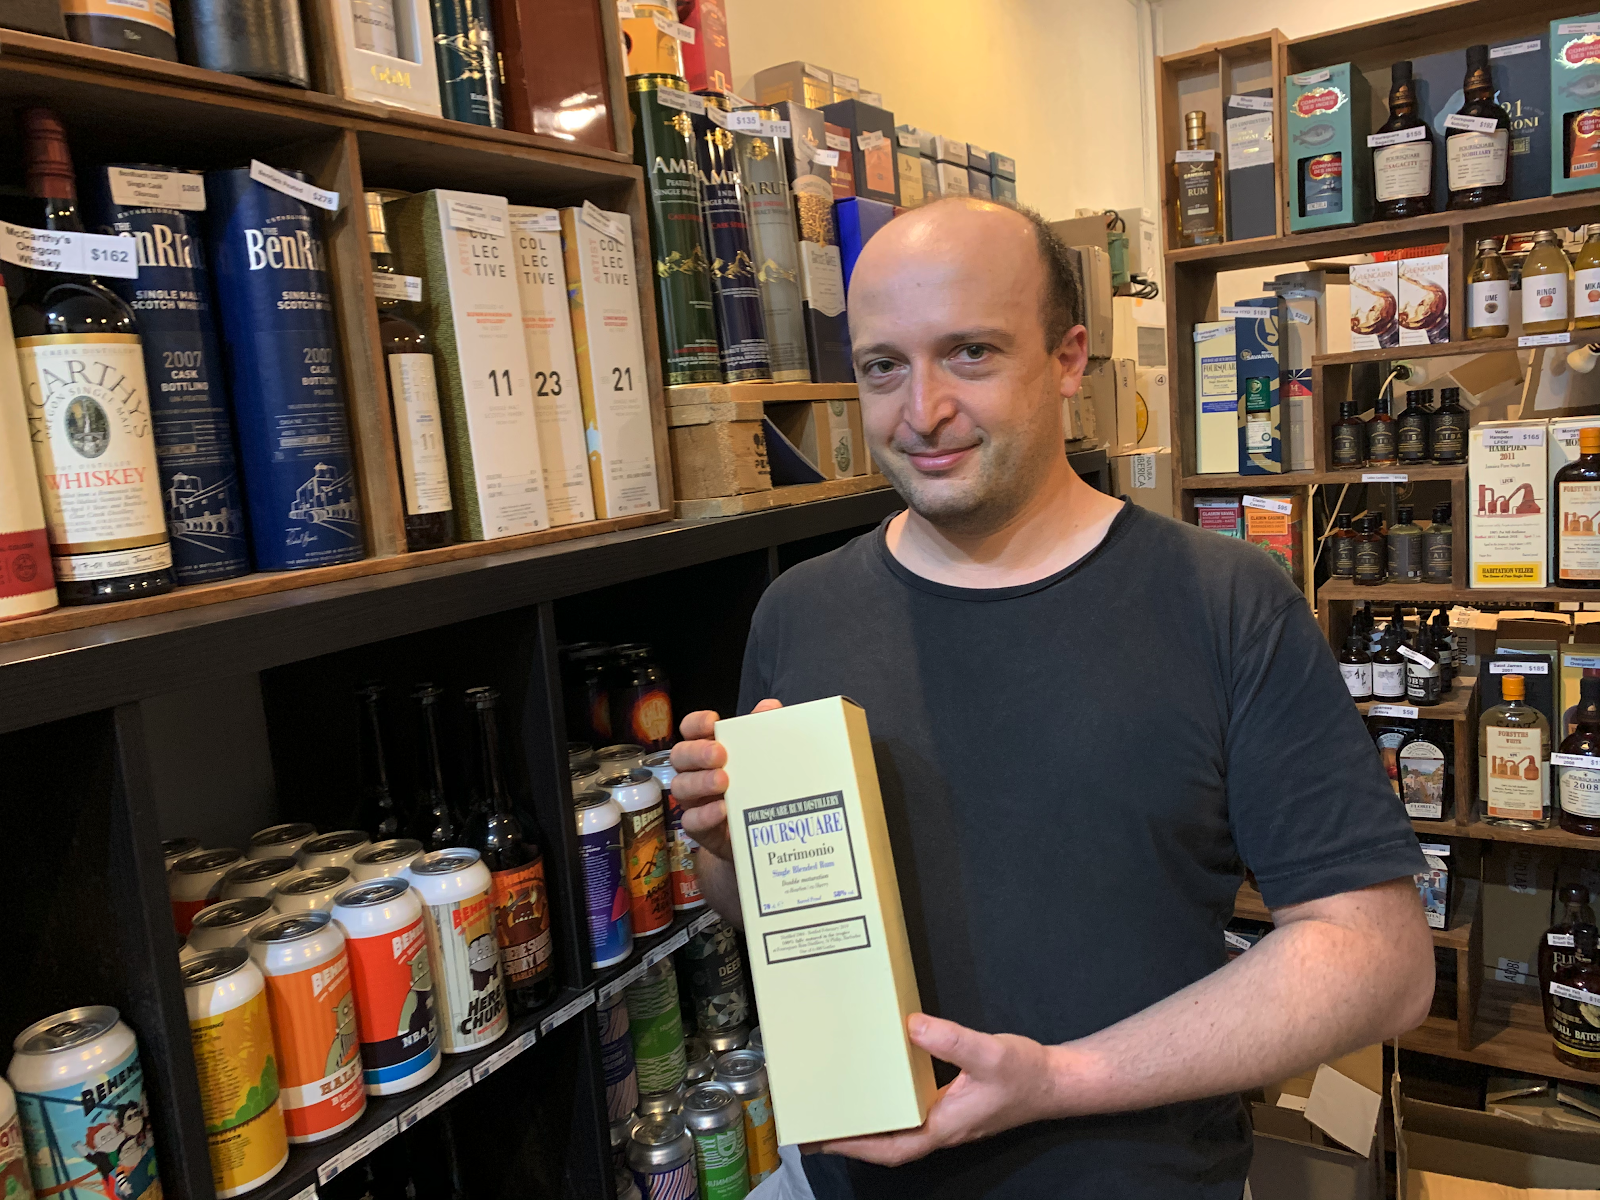 Luc strikes a pose with a bottle of Foursquare Rum